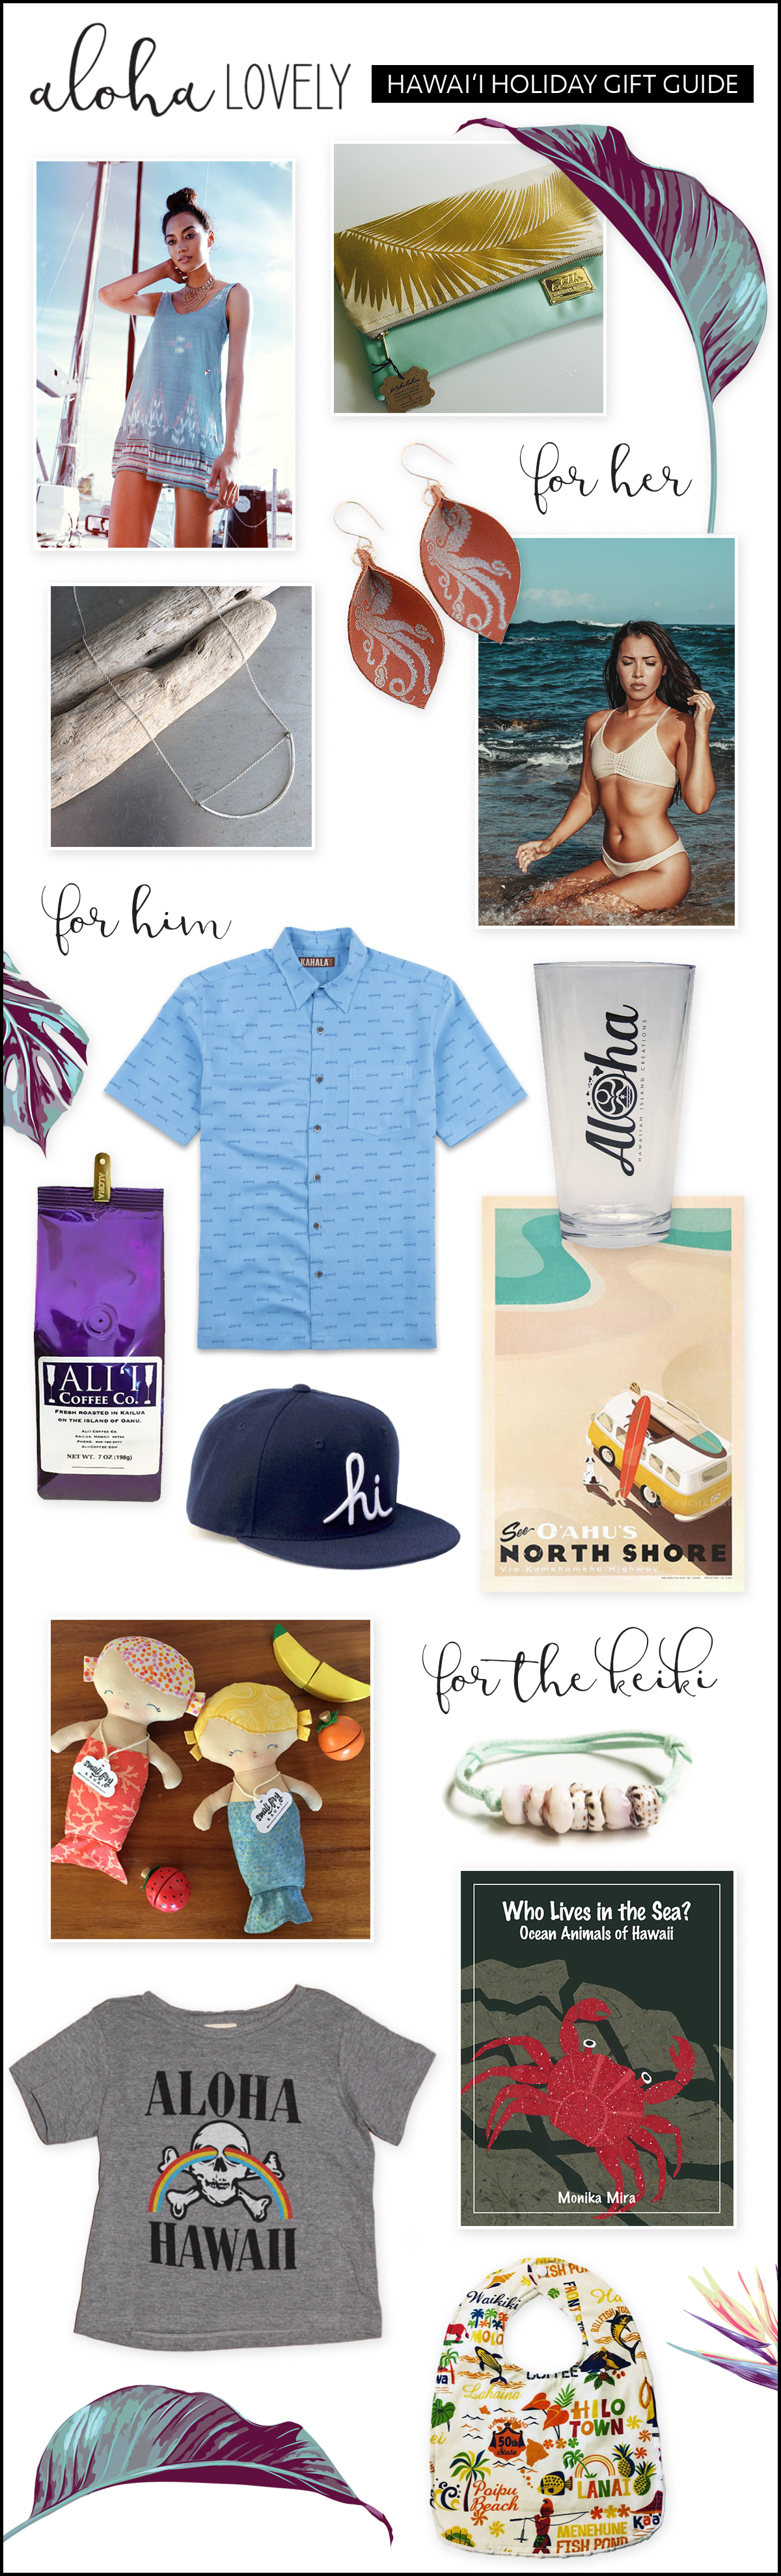 Aloha Lovely Holiday Gift Guide